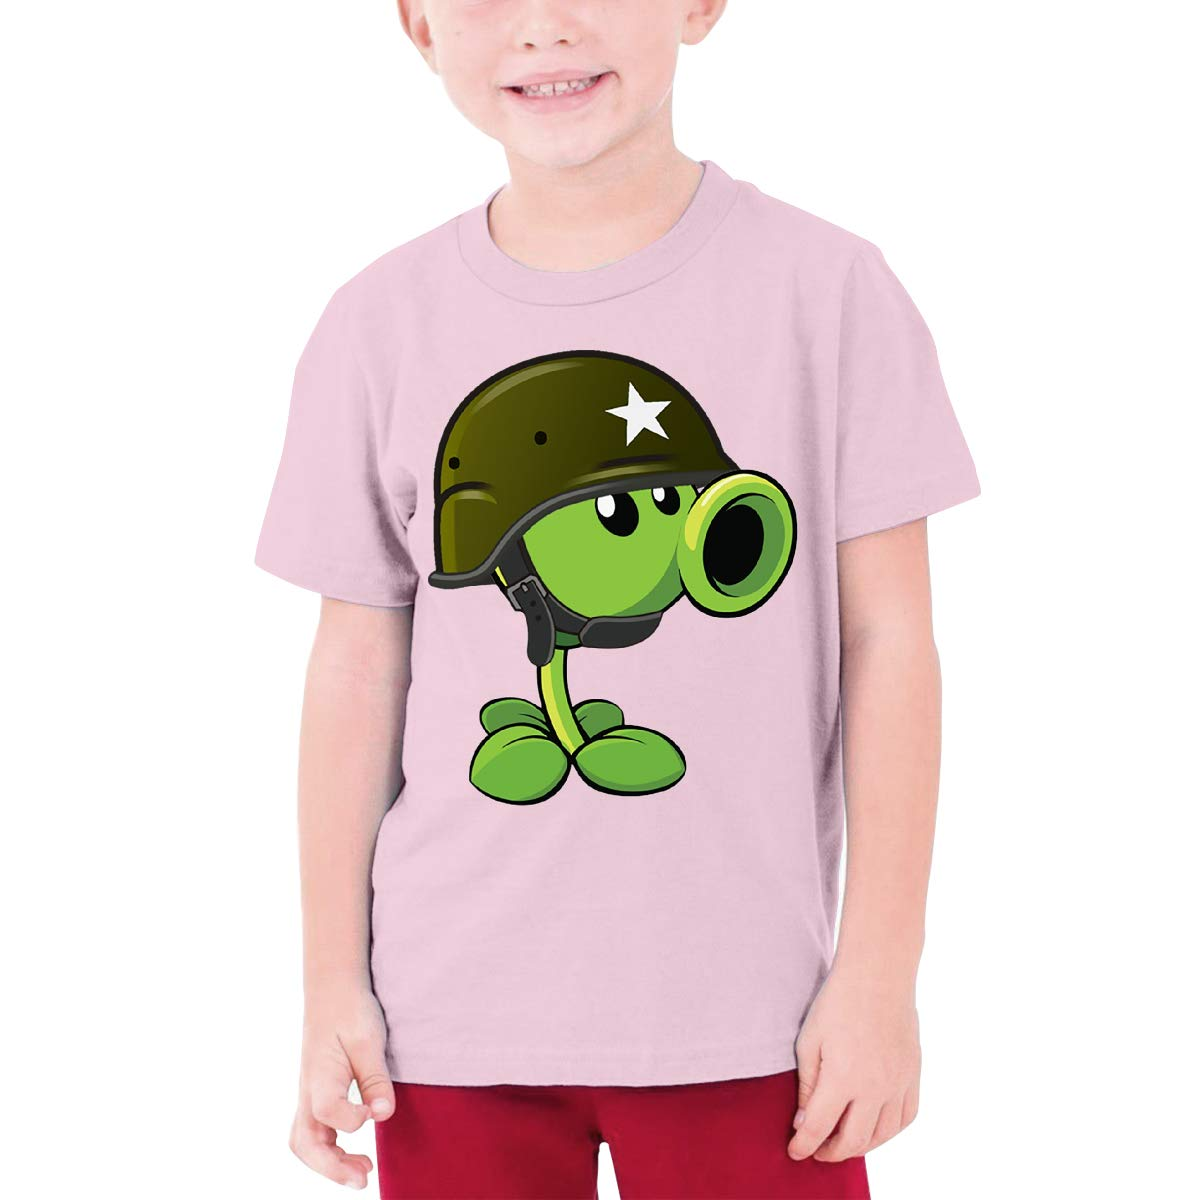 Kaivi Designed T Shirt Plants Vs Zombies Pea Shooter Funny Shirt Short Sleeve for Youngster Black